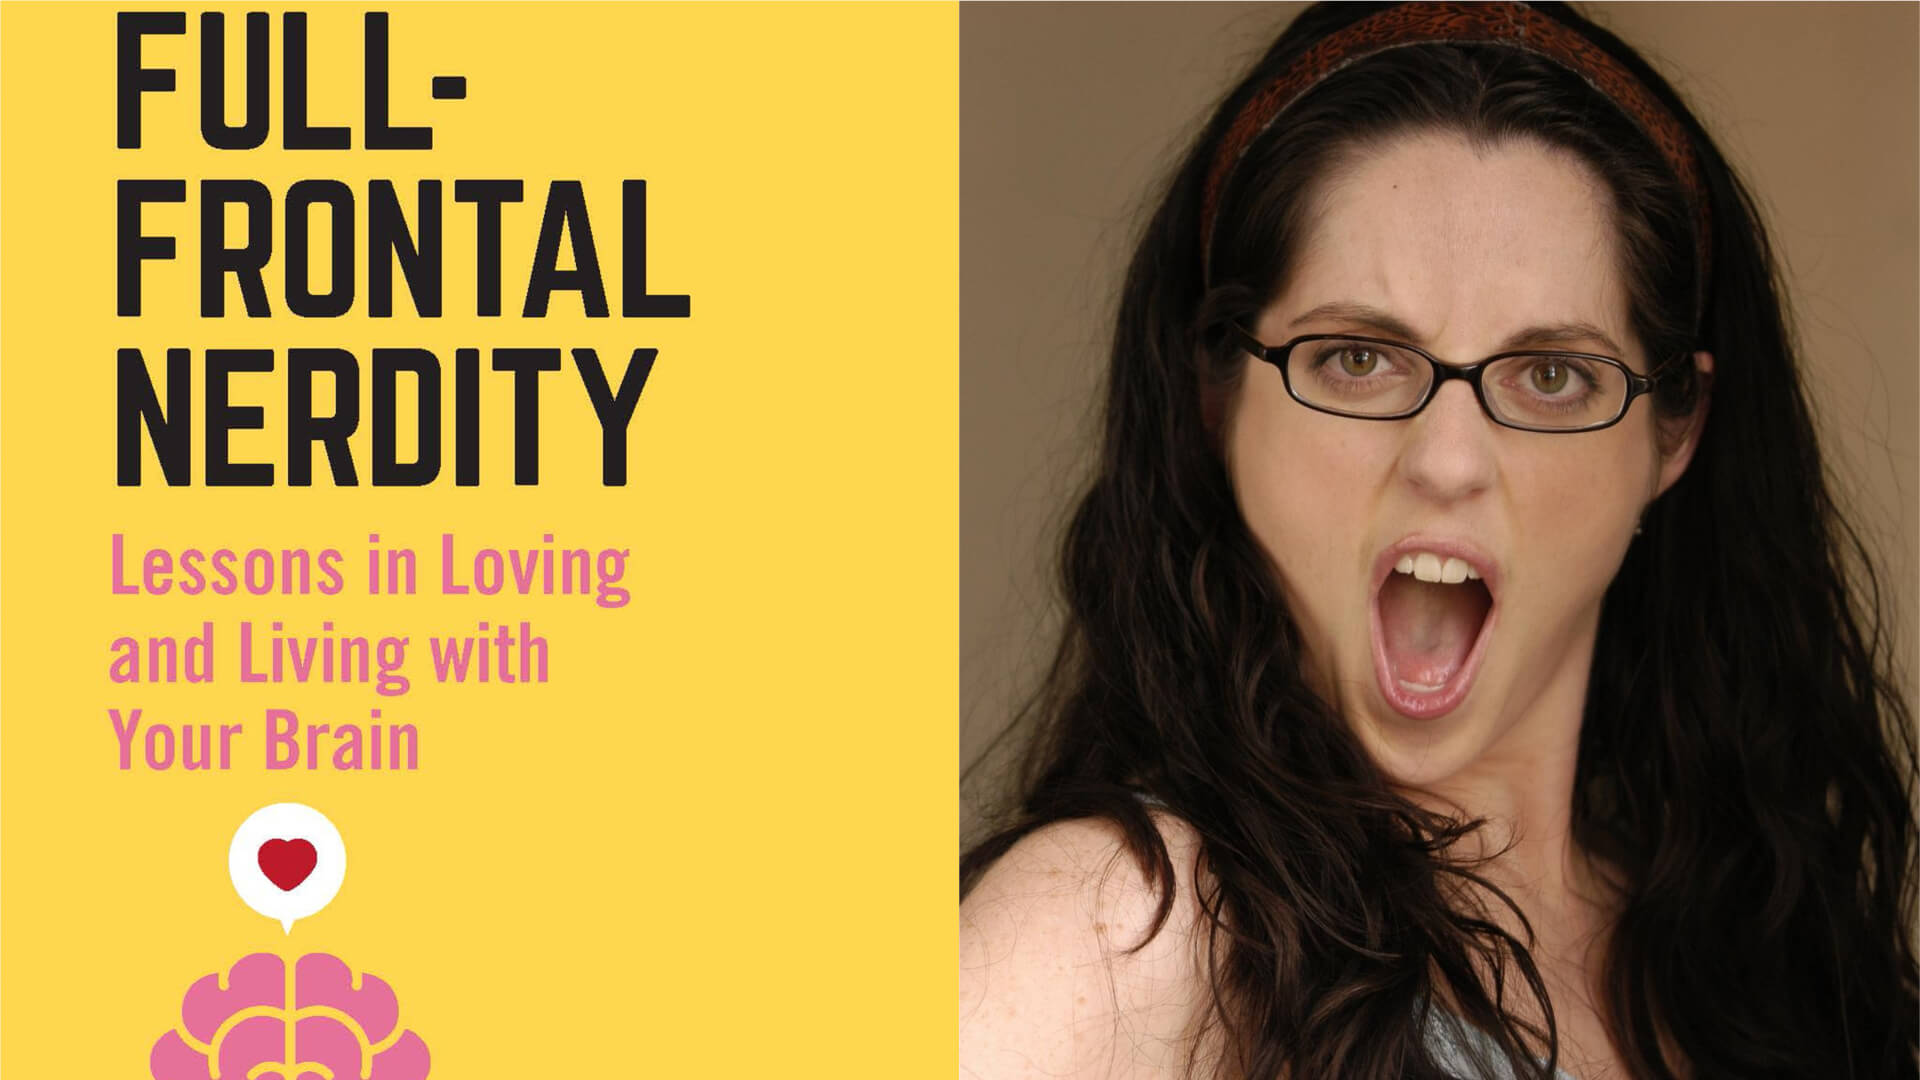 An Interview With Author Kate Wiswell of Full-Frontal Nerdity